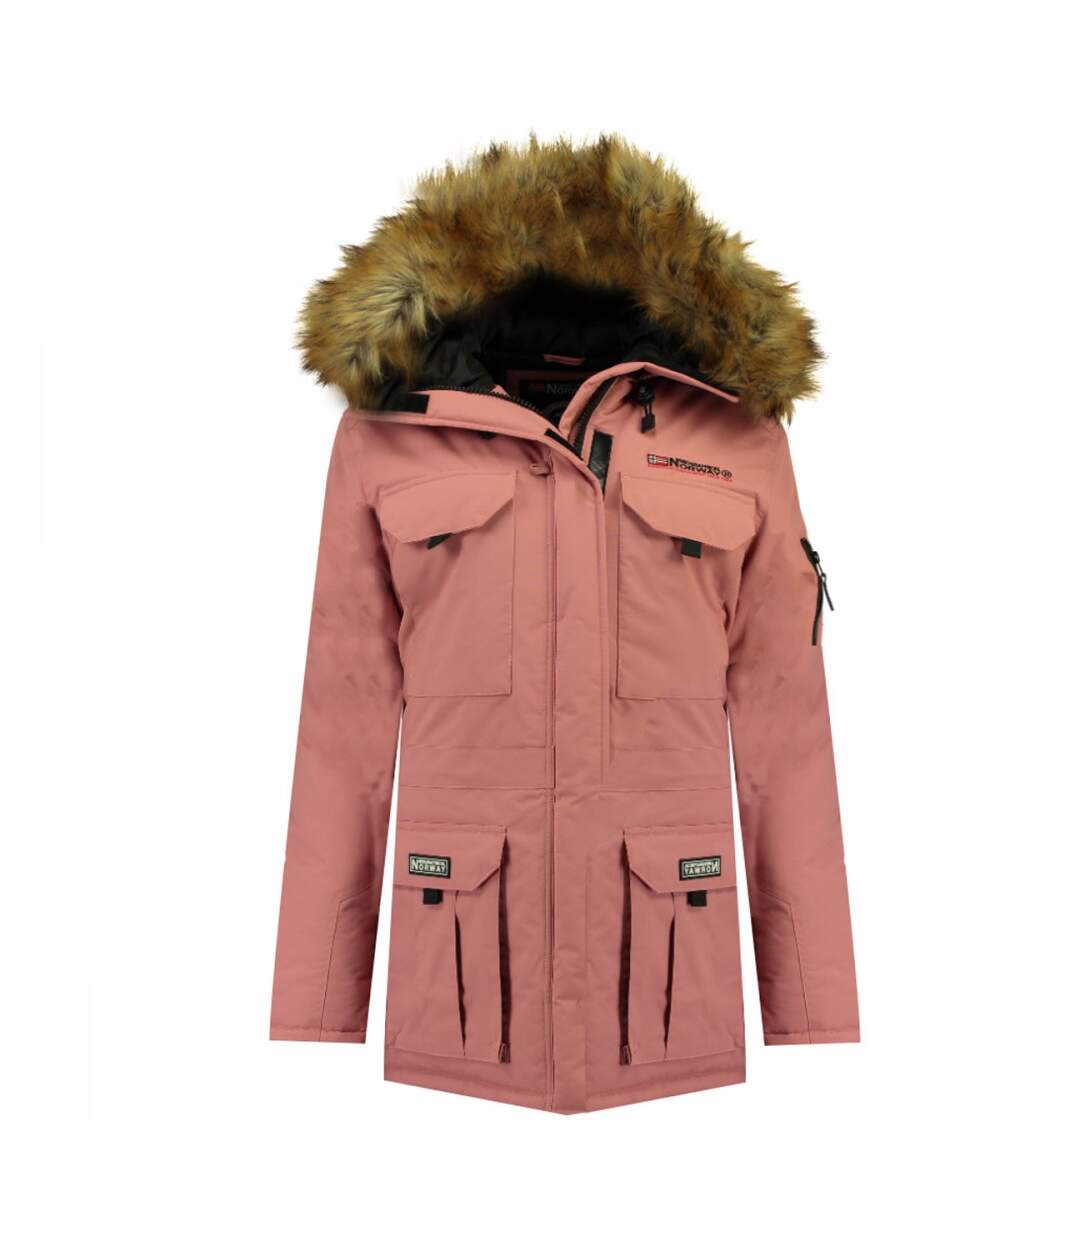 Parka Rose pâle femme Geographical Norway Alpes